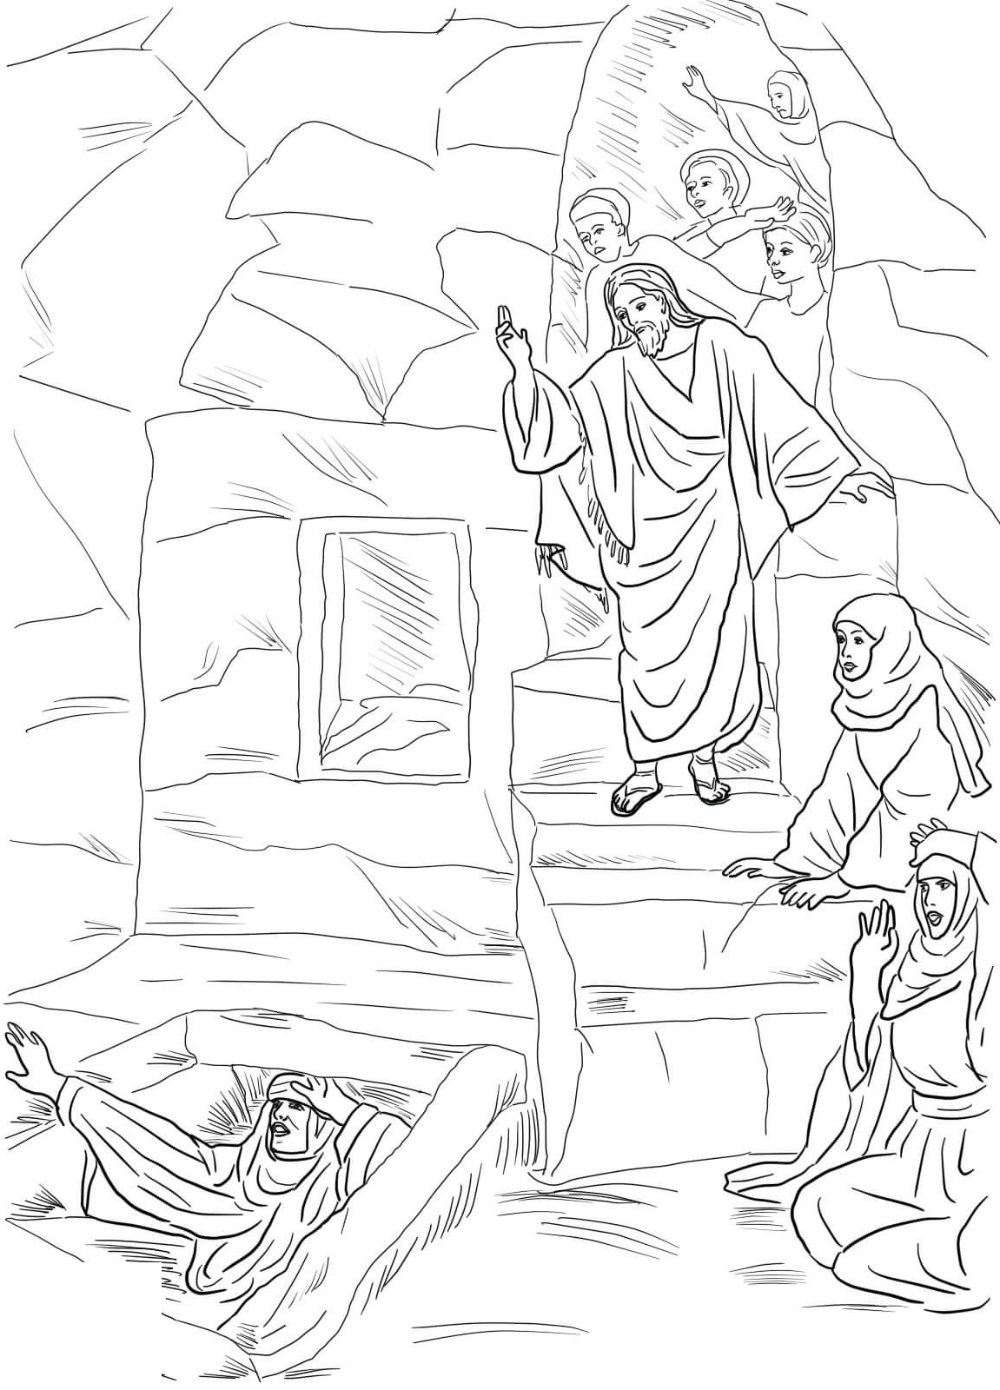 Lazarus Coloring Pages Free Sunday School Coloring Pages Coloring Pages Free Printable Coloring Pages